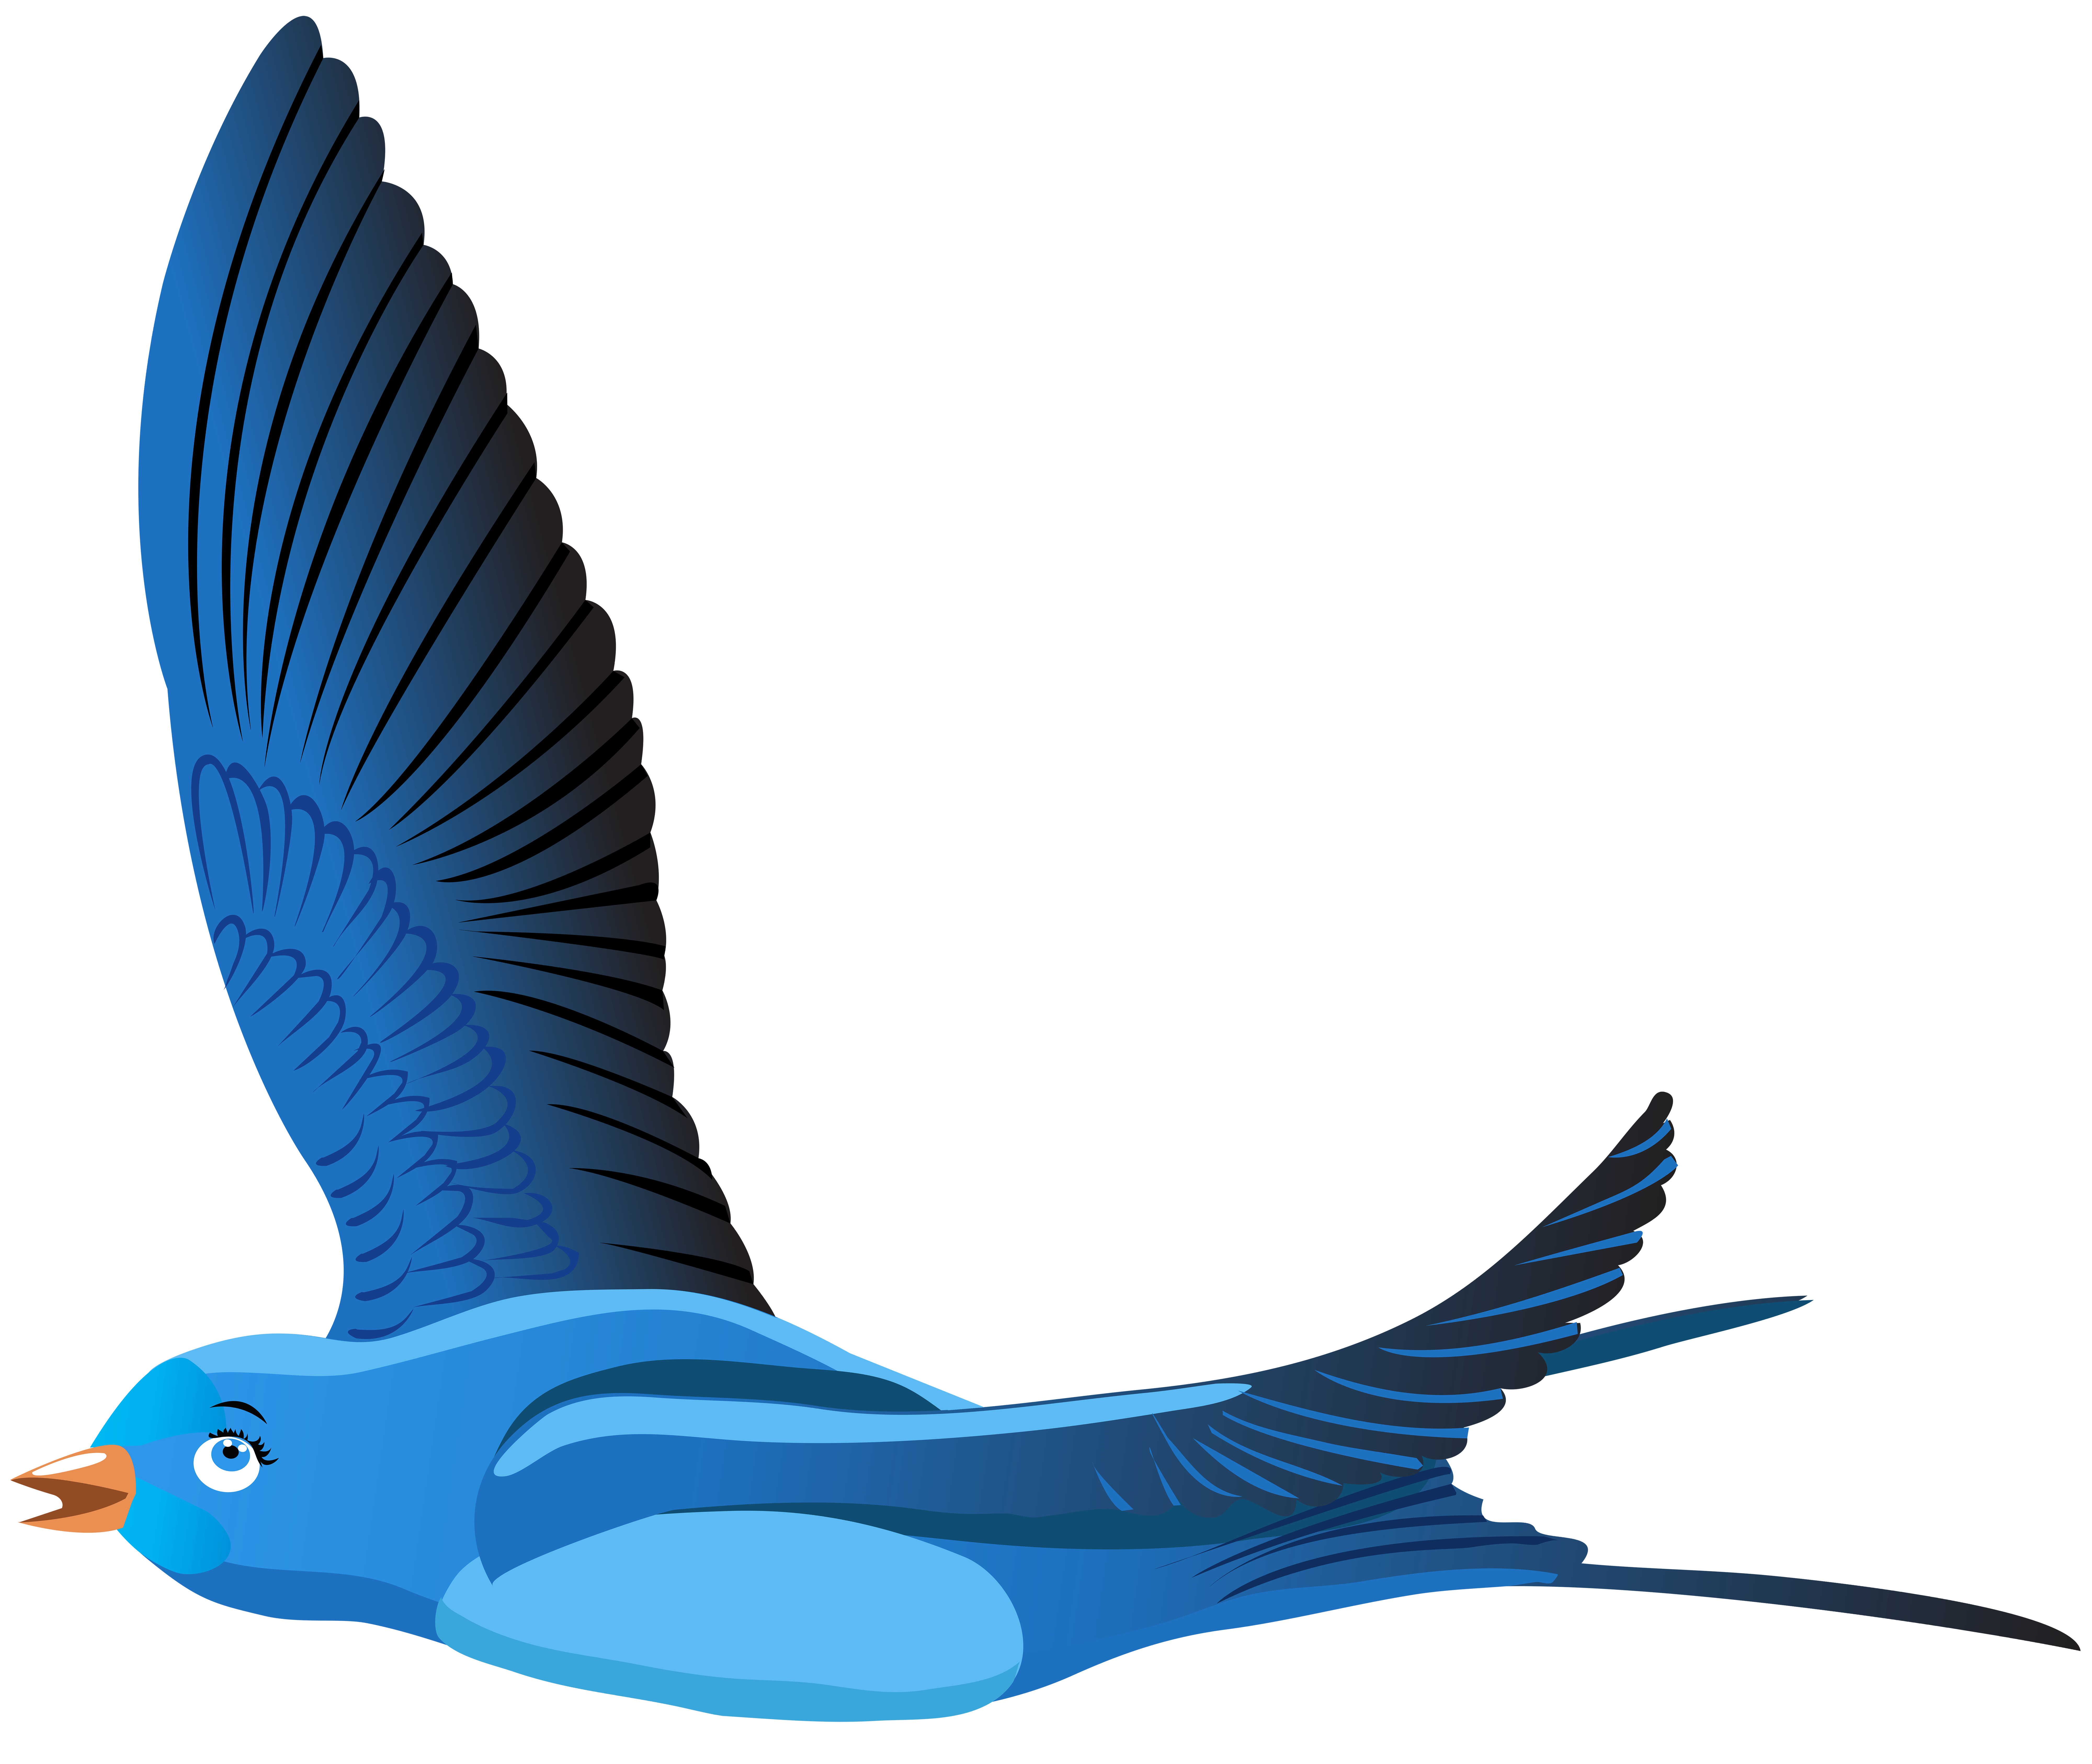 Cartoon bird png. Blue transparent clip art